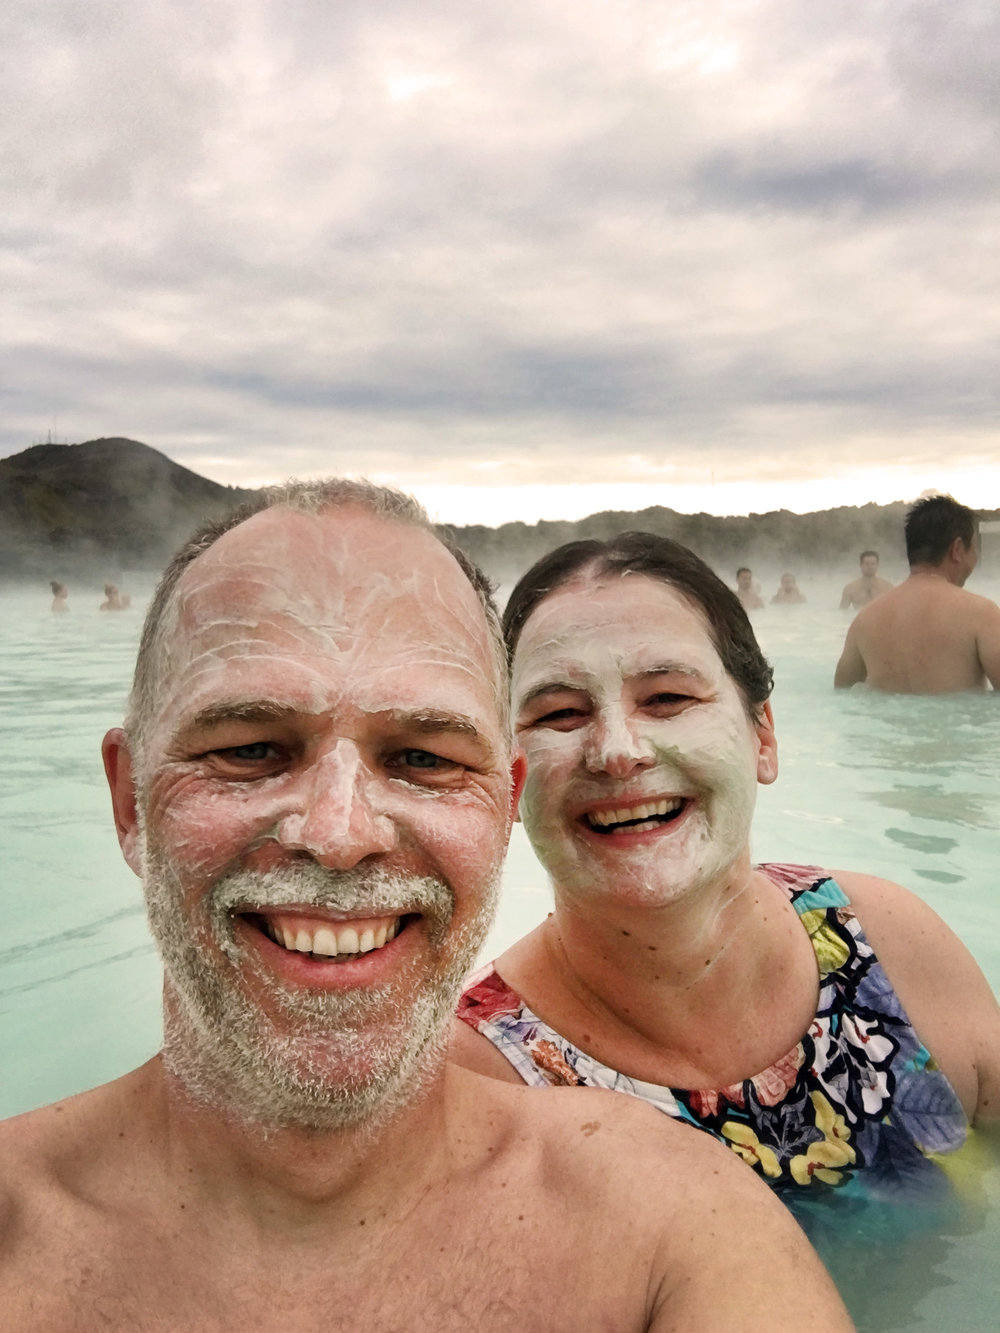 Smiles and face masks at The Blue Lagoon